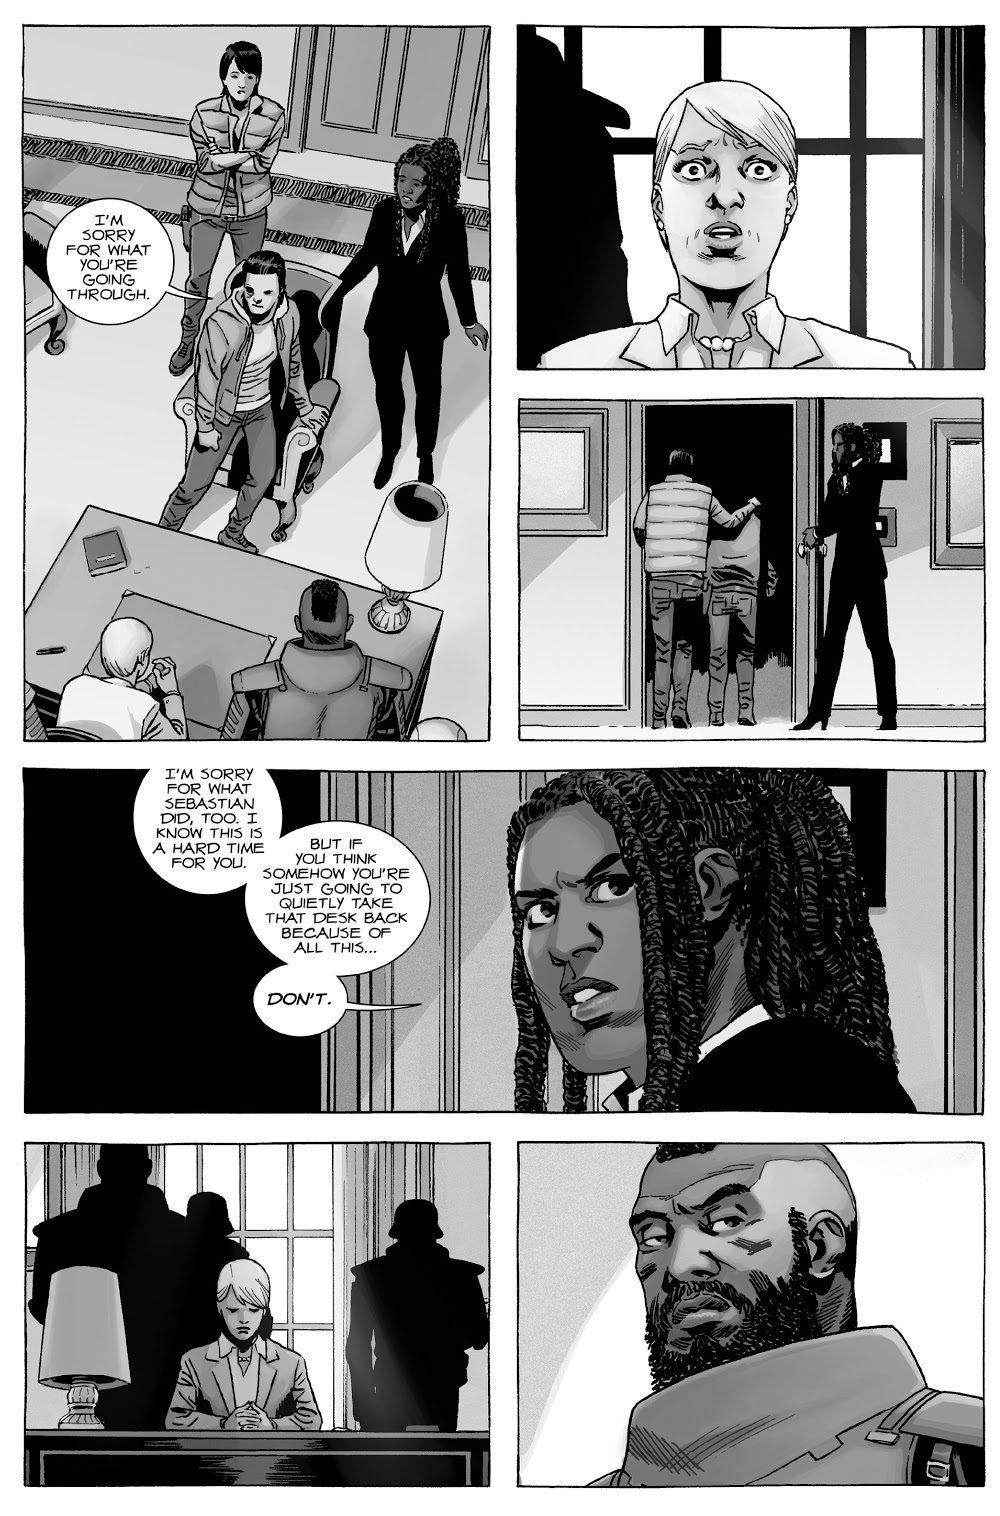 Carl Grimes's Threat To Spencer Milton (The Walking Dead)